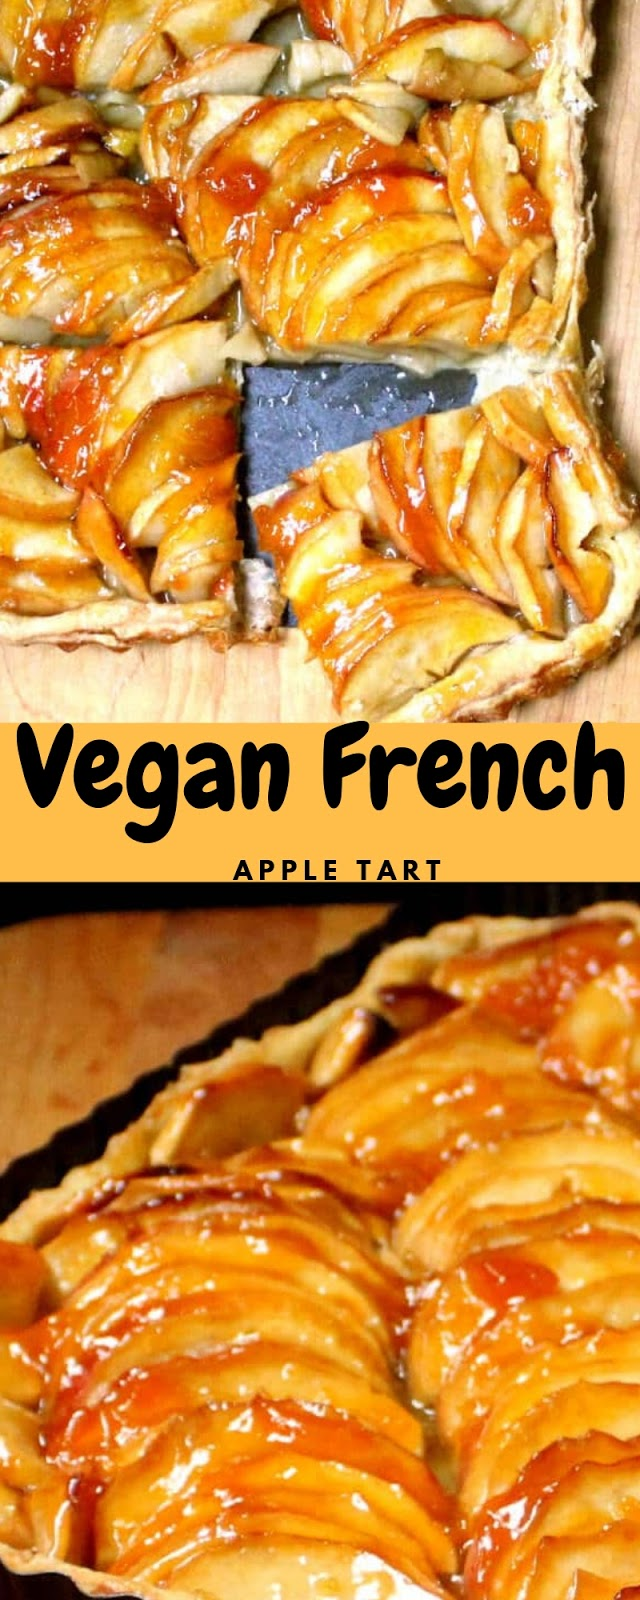 Vegan French Apple Tart